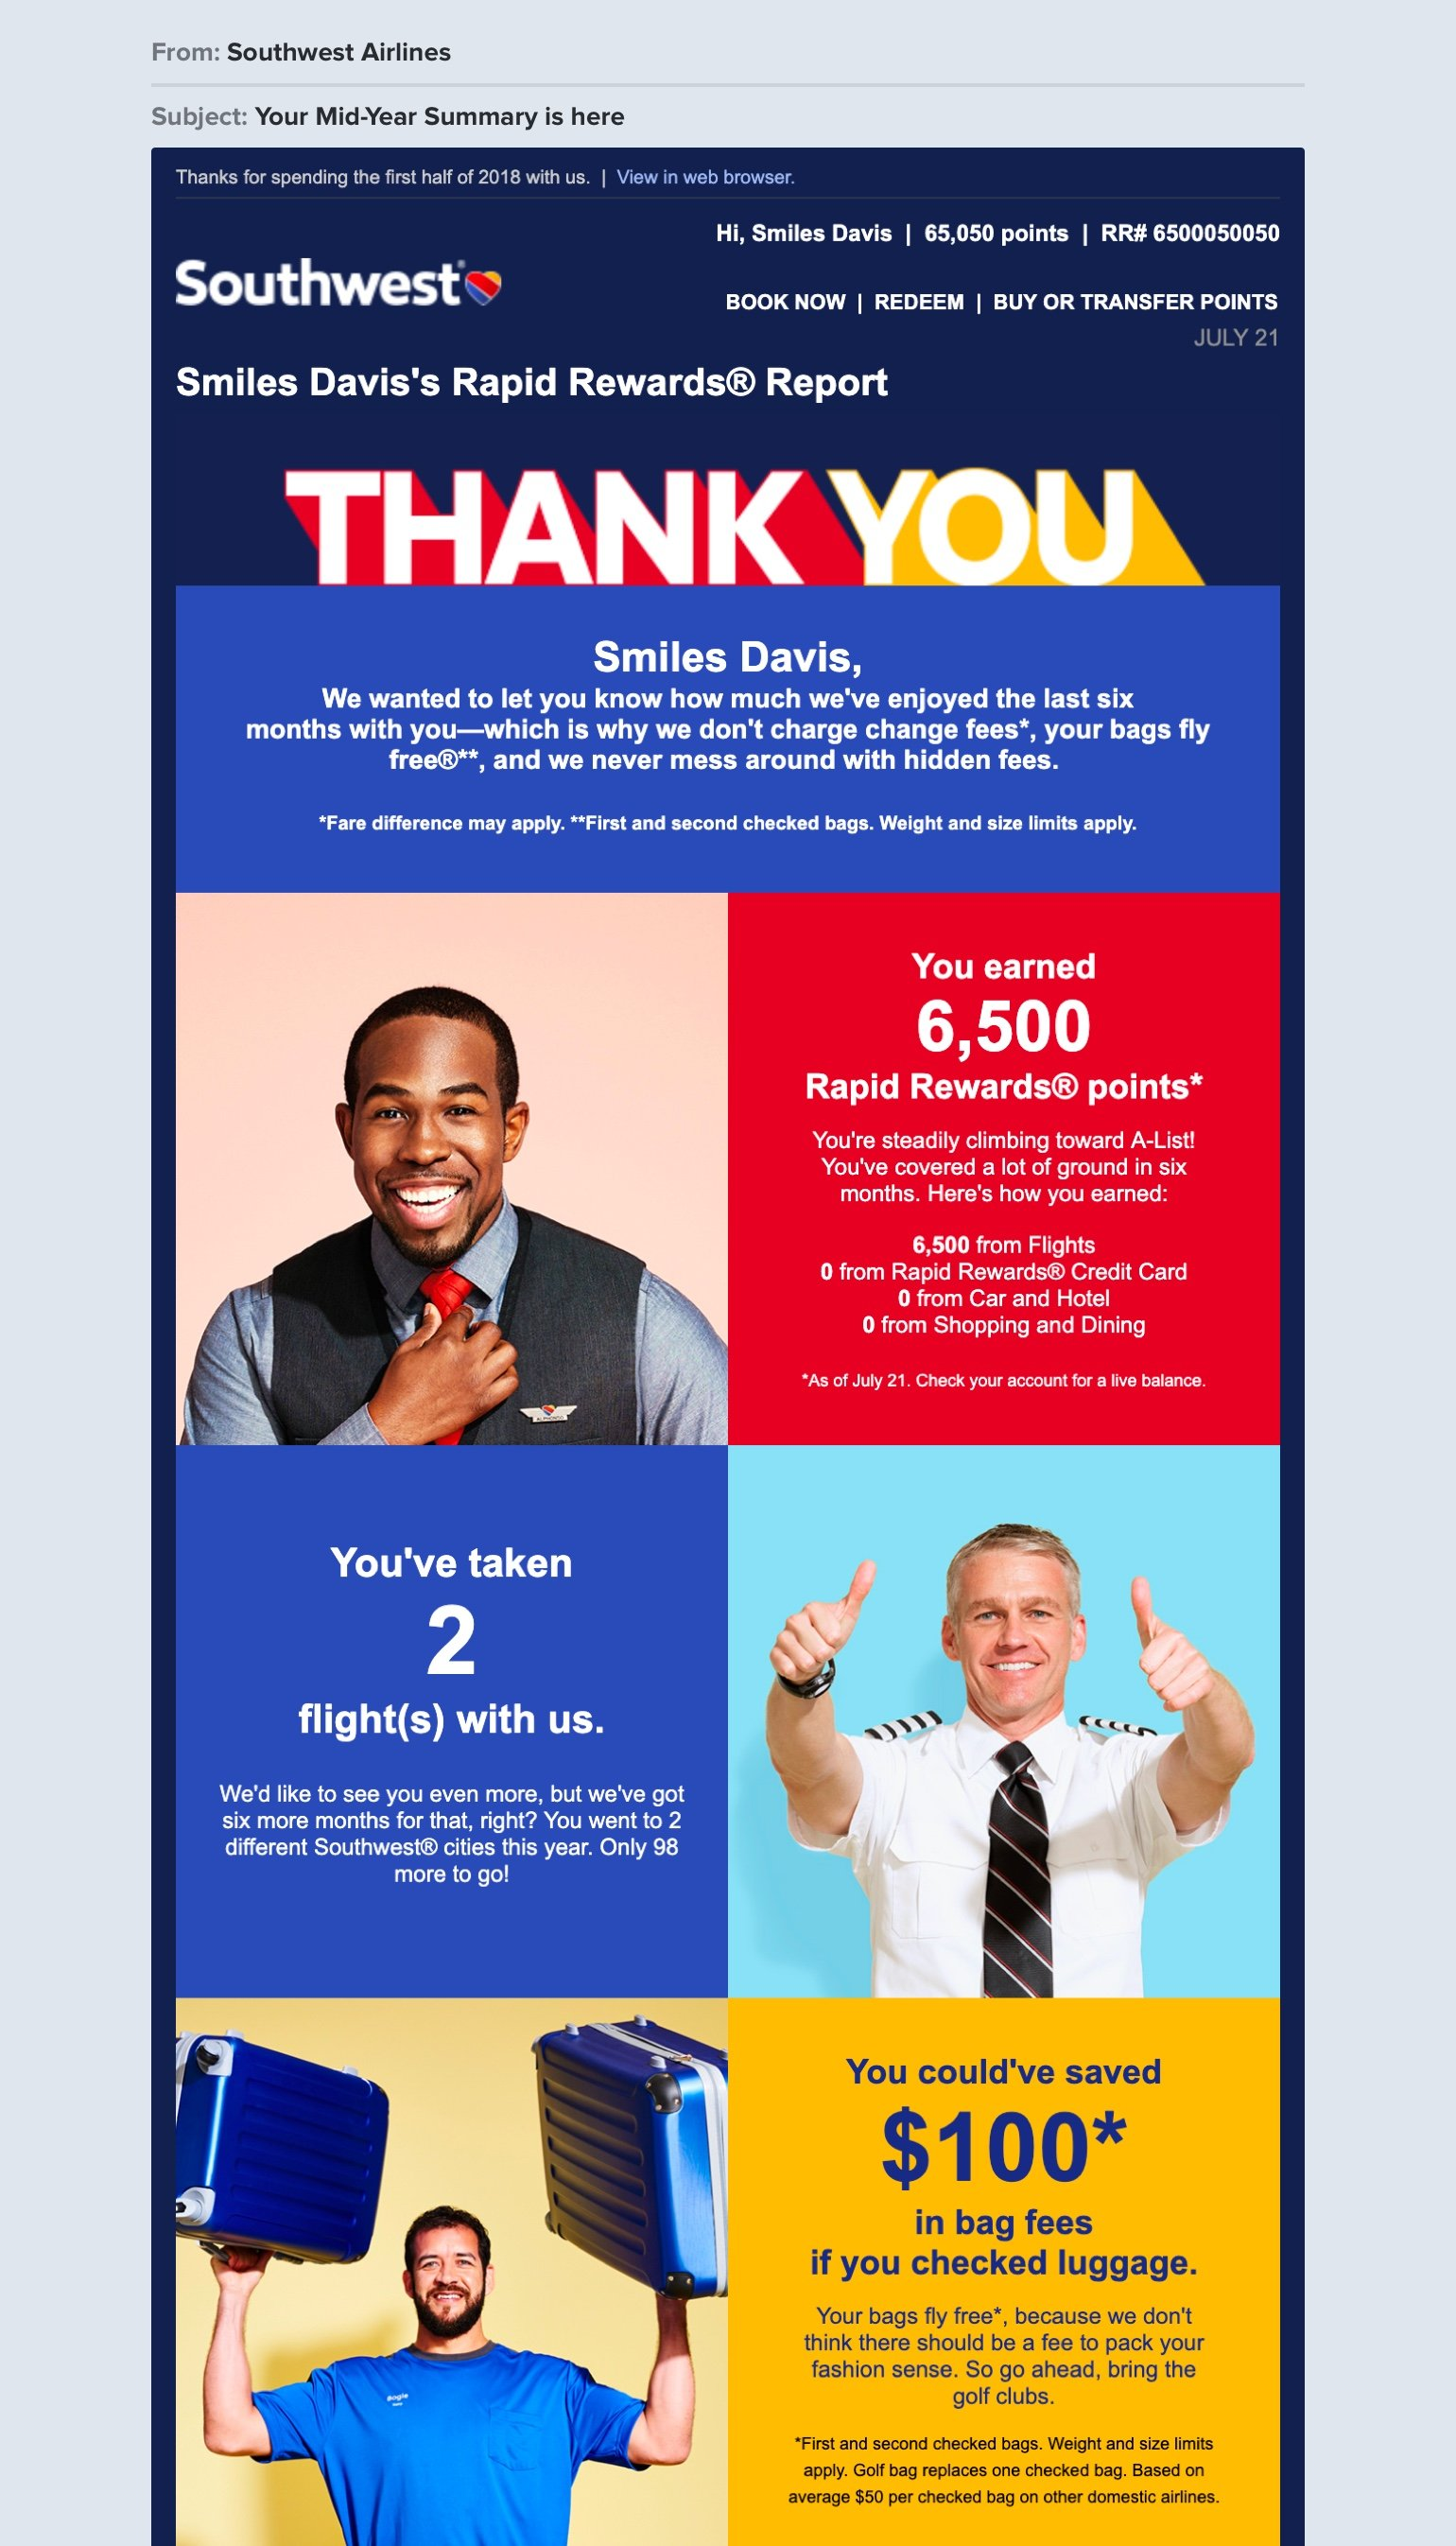 Southwest Airlines newsletter example